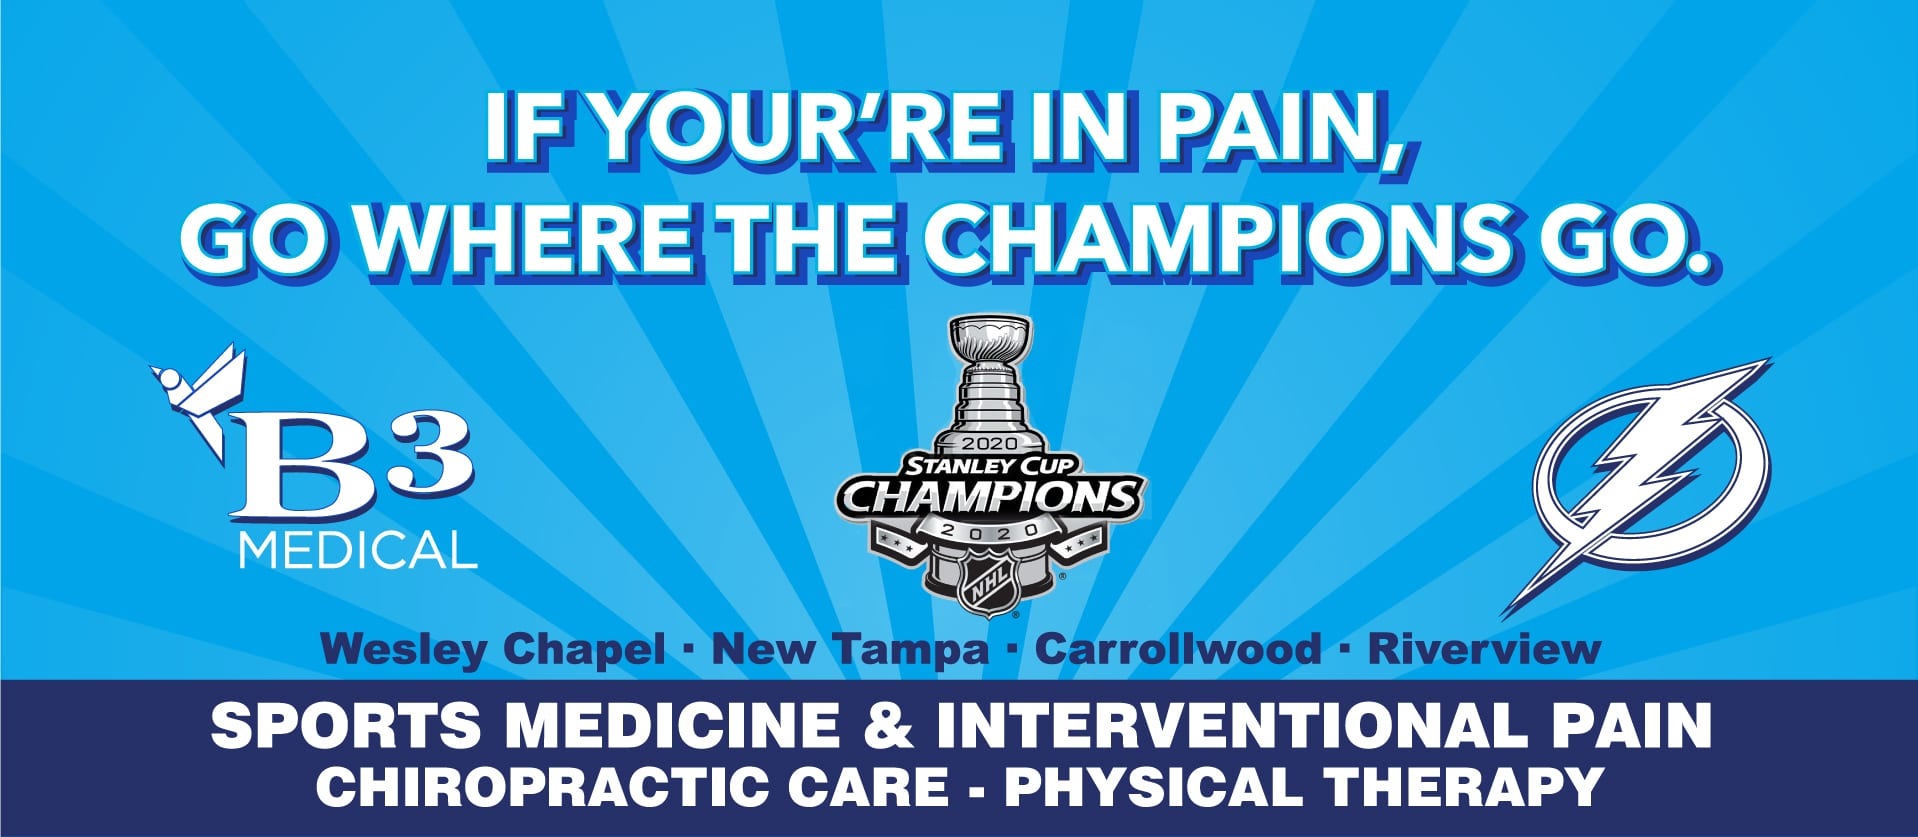 Go Where the NHL Champions Go. B3 Medical